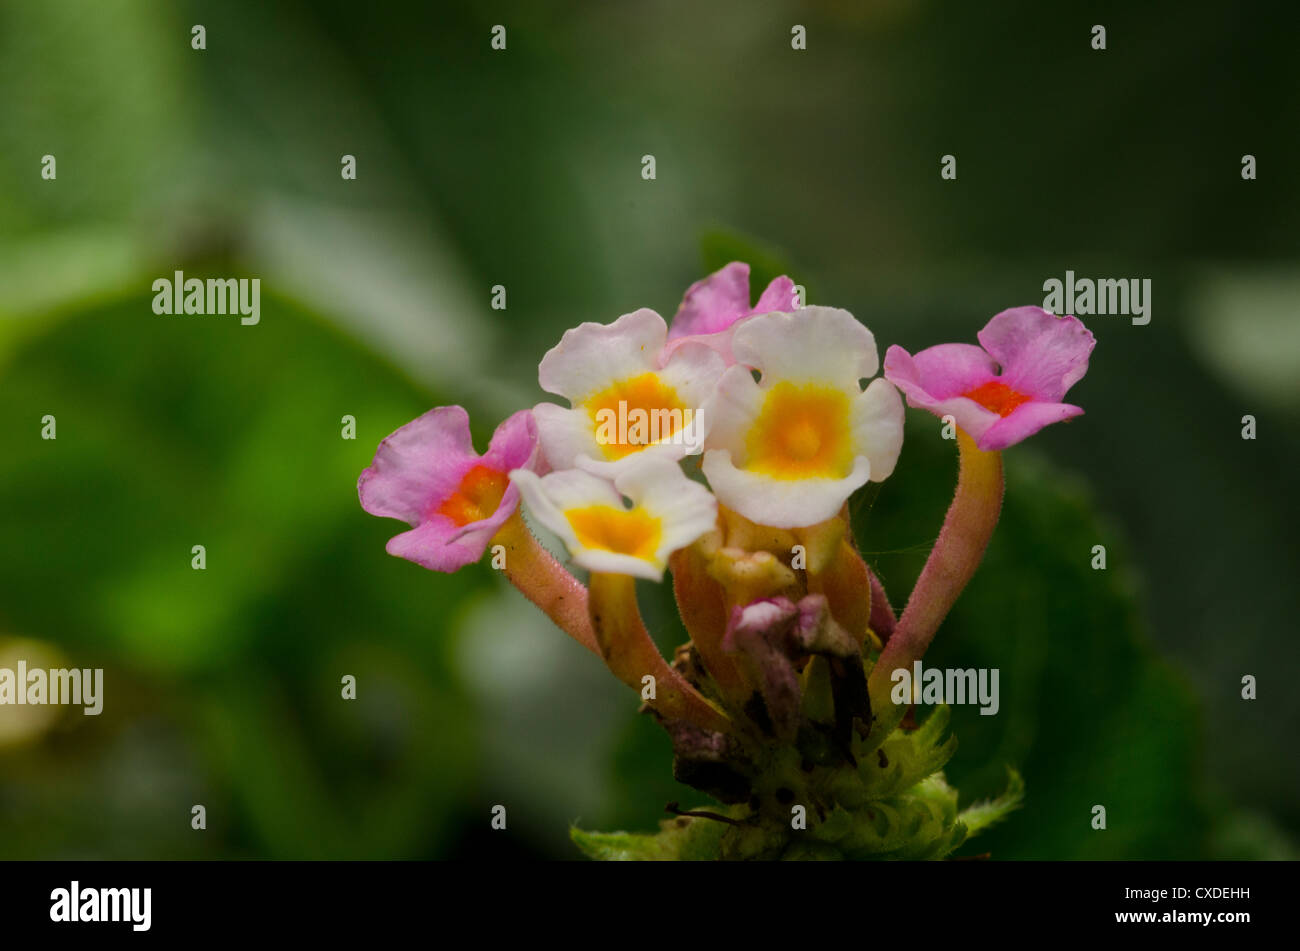 Tiny Pink Flowers Stock Photos Tiny Pink Flowers Stock Images Alamy